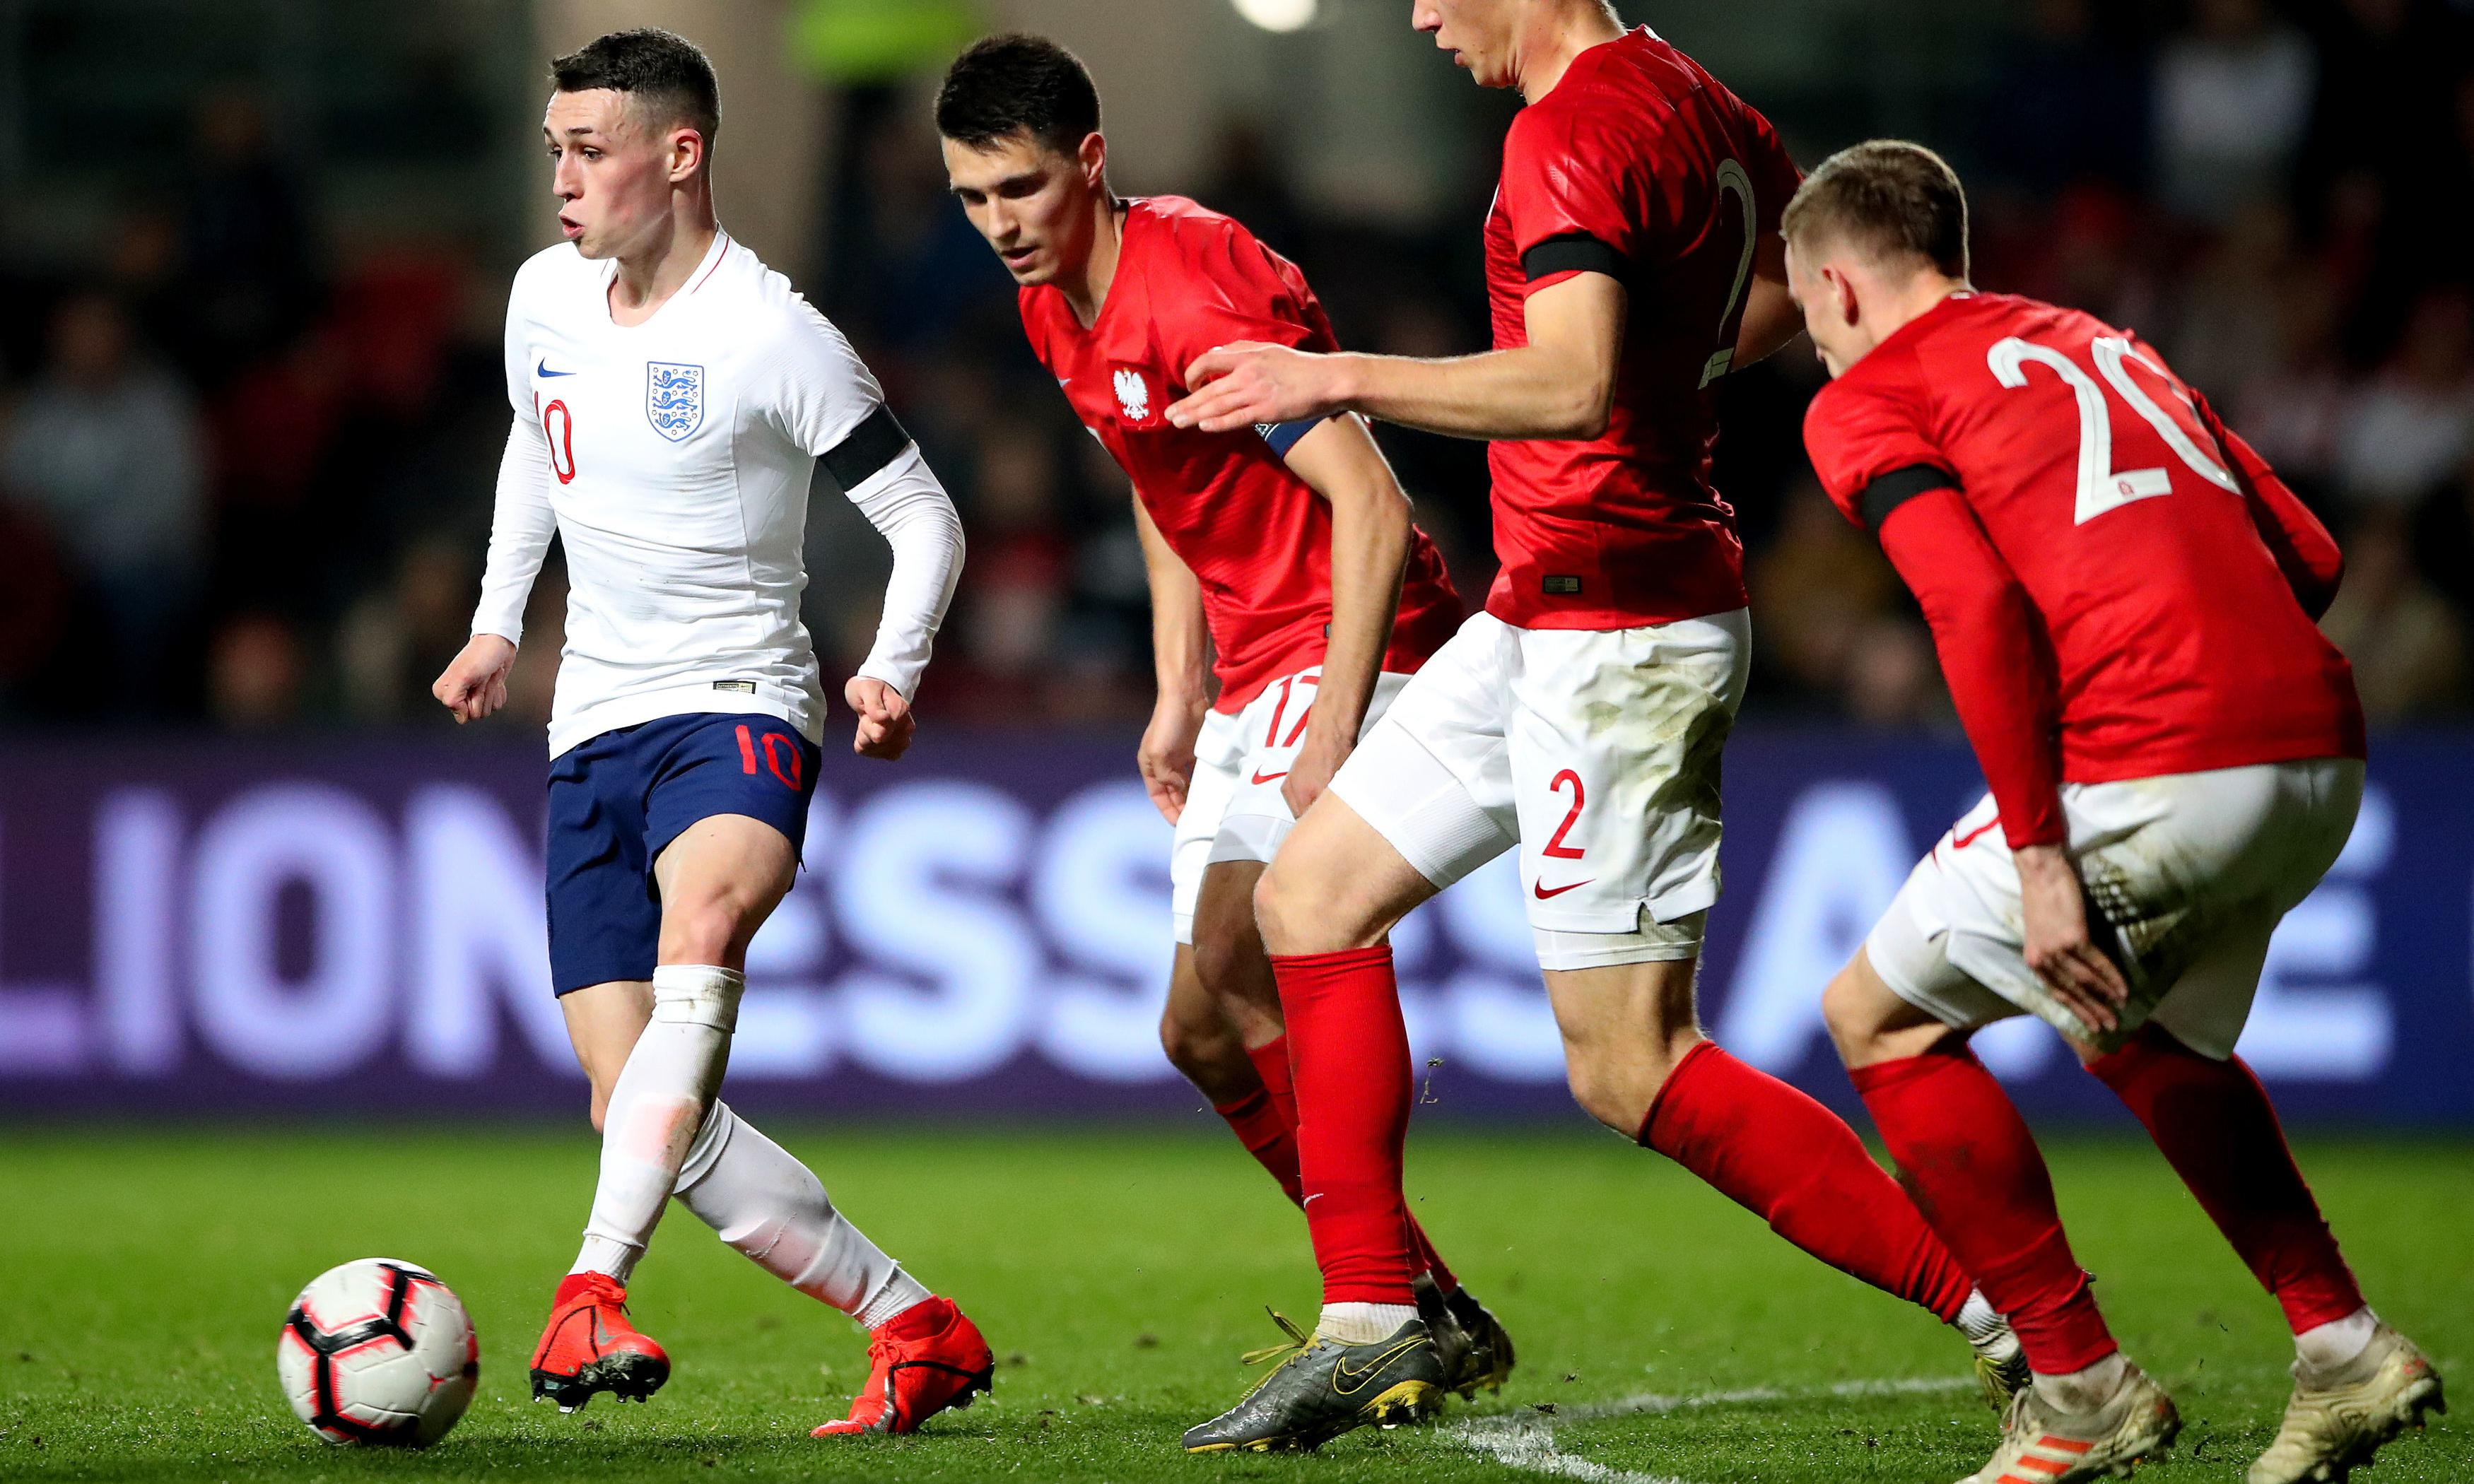 England-Germany showdown presents stark clash of youth cultures